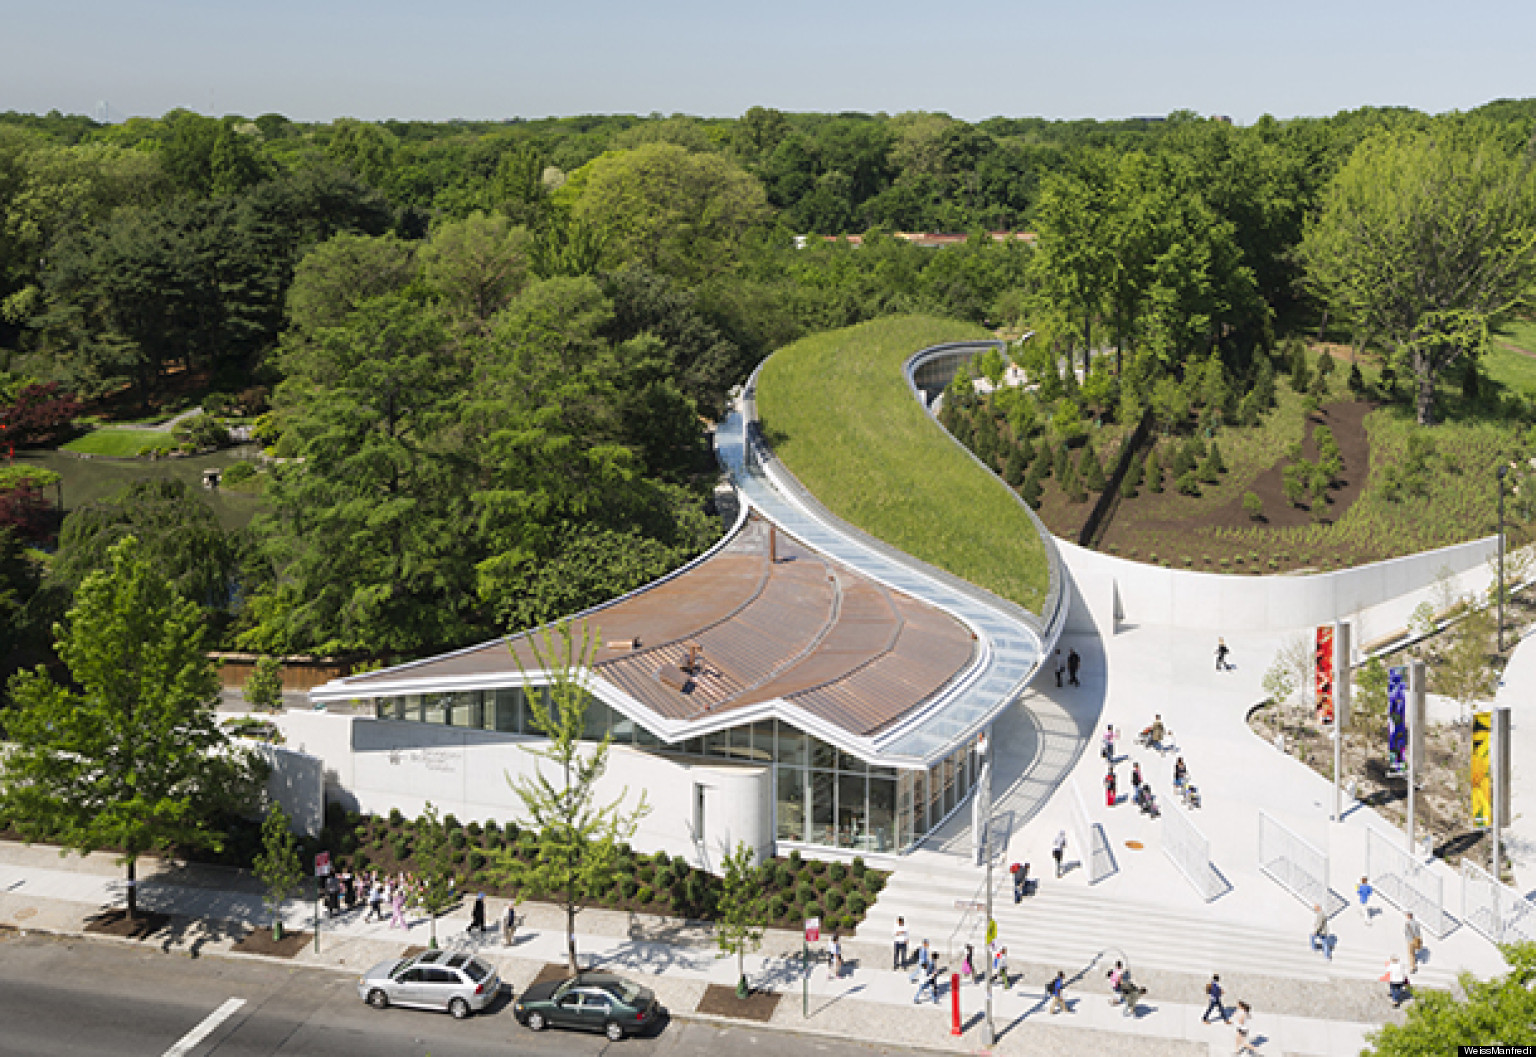 Broadening the Role of Architects: Brooklyn Botanic Garden Visitor